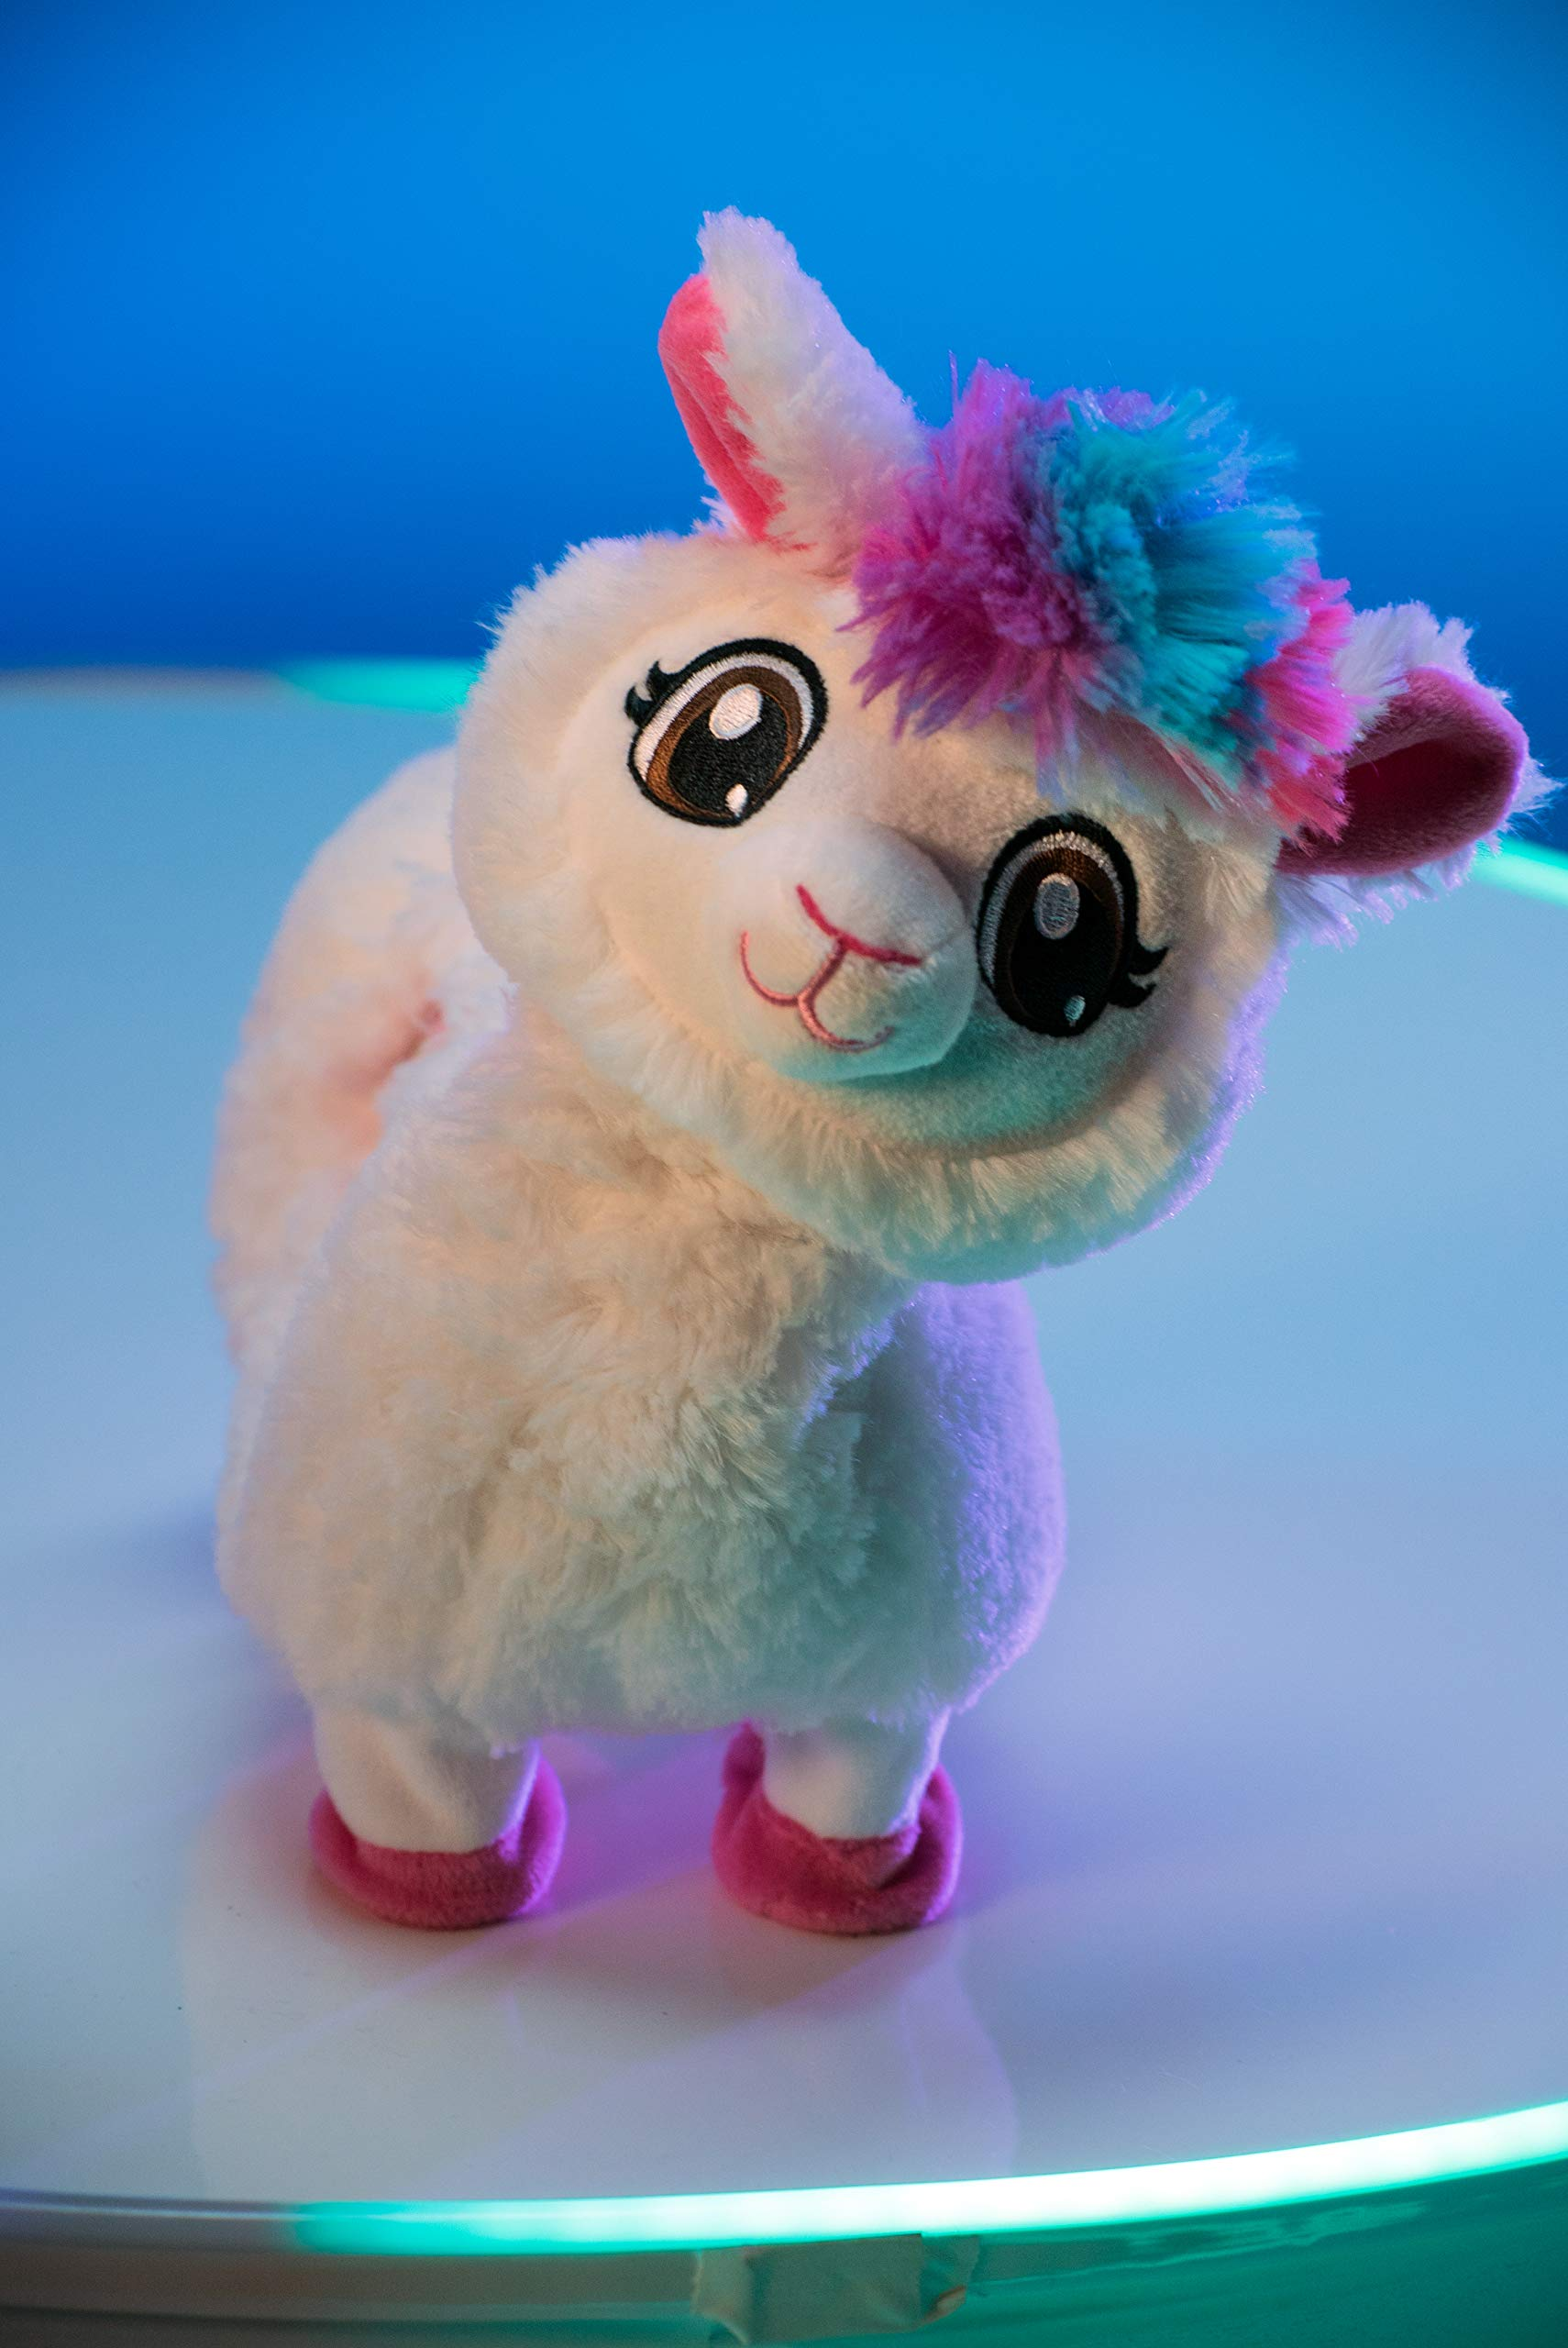 Pets Alive Boppi The Booty Shakin Llama Battery-Powered Dancing Robotic Toy by Zuru by Pets Alive (Image #4)